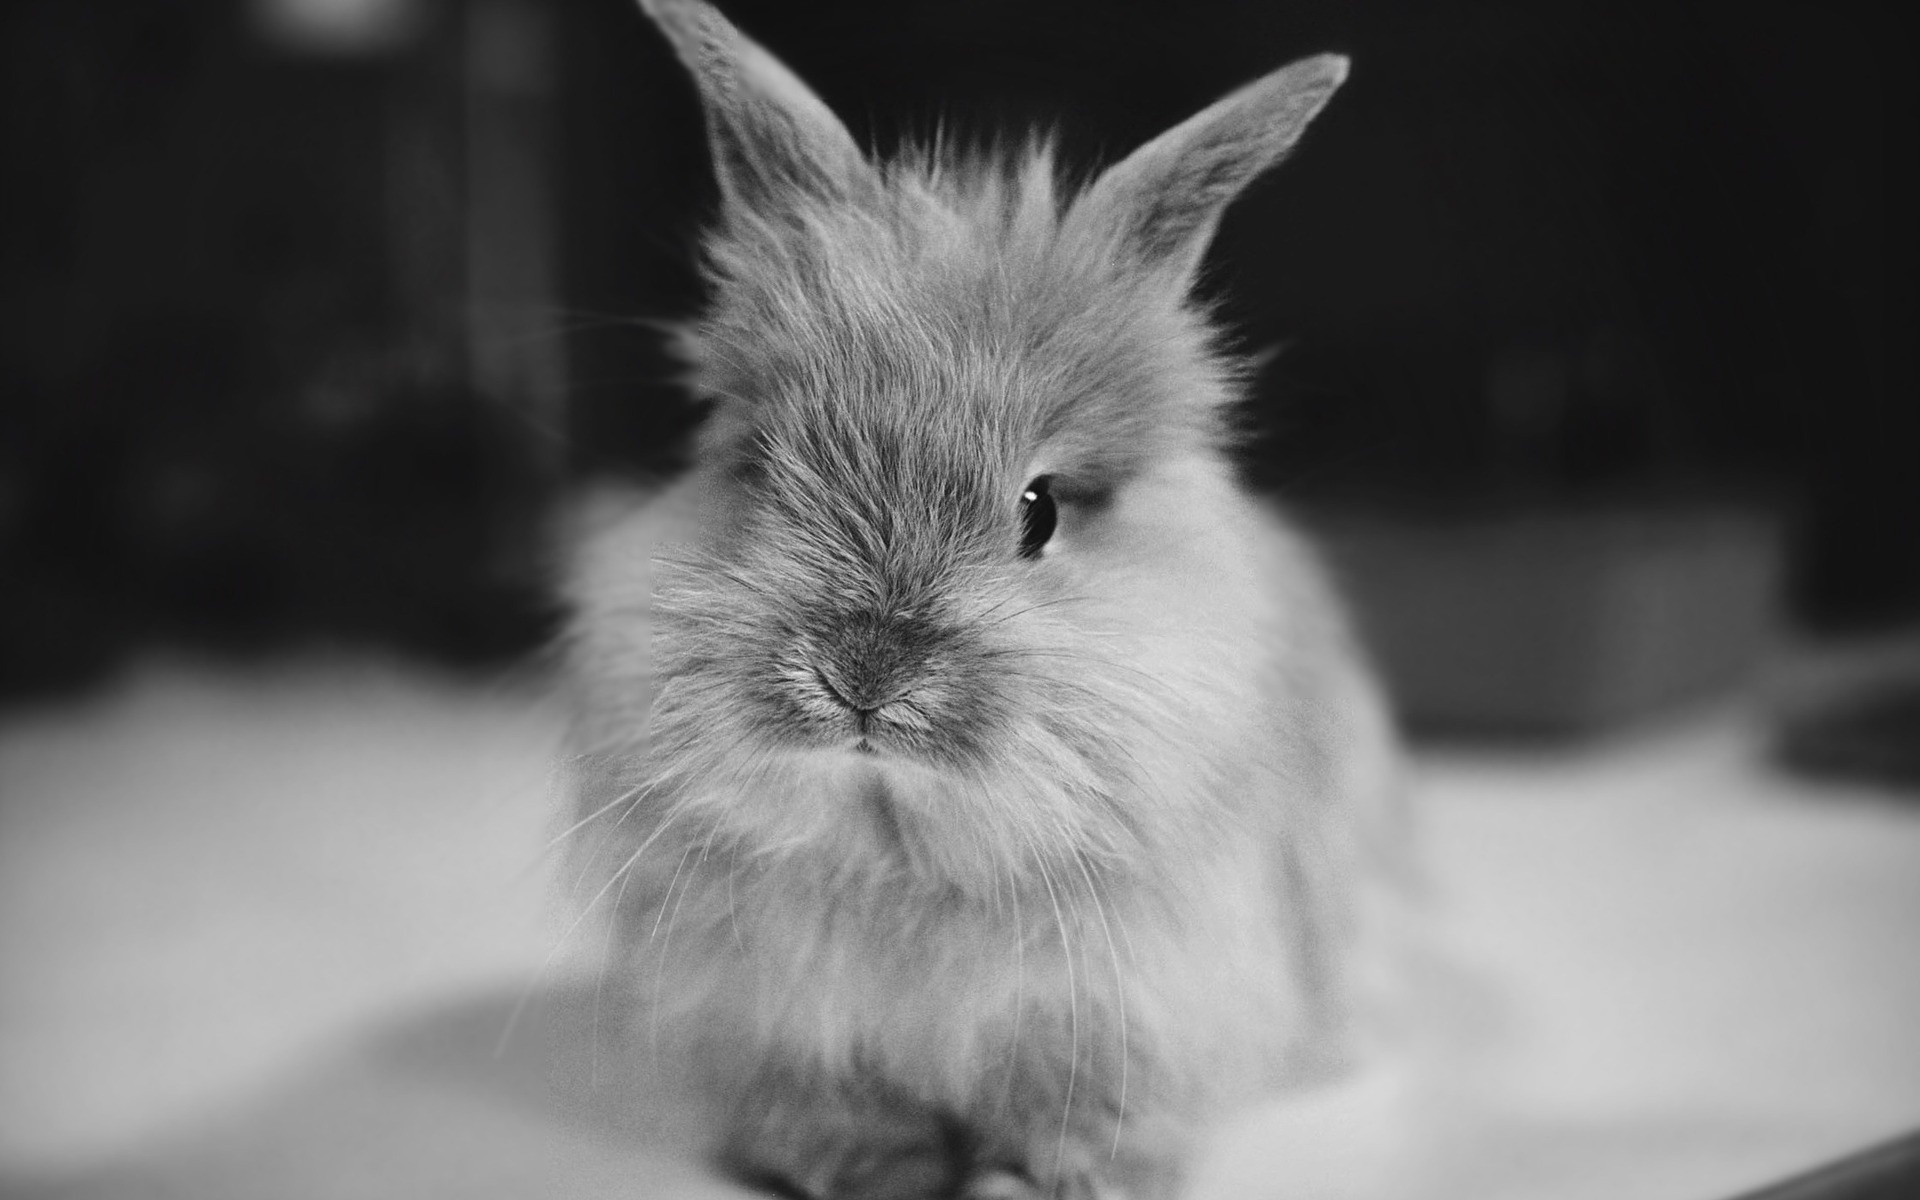 Cute bunny rodents beautiful black and white rabb 1920x1200